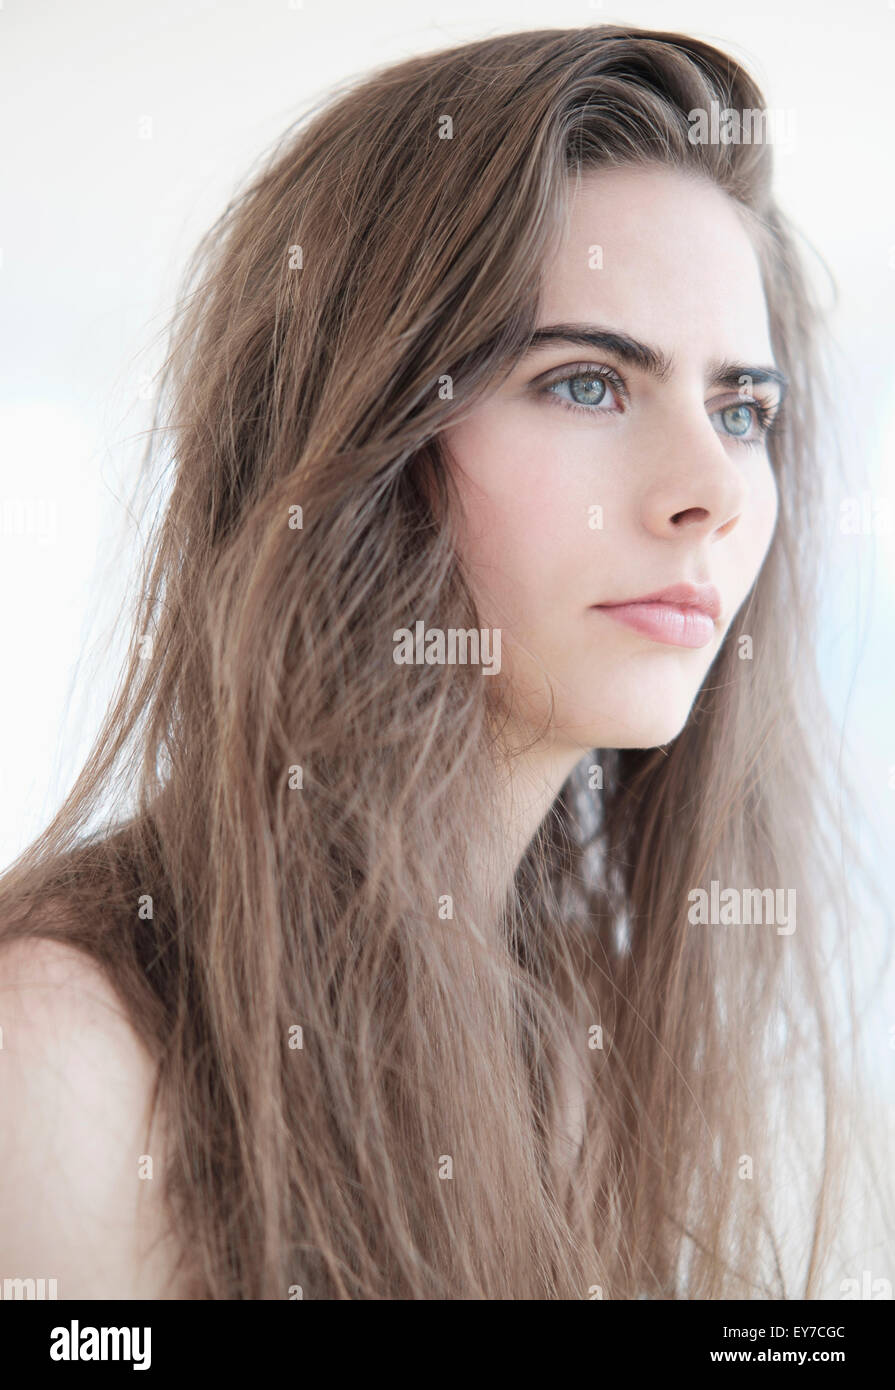 Portrait of young woman with blue eyes - Stock Image